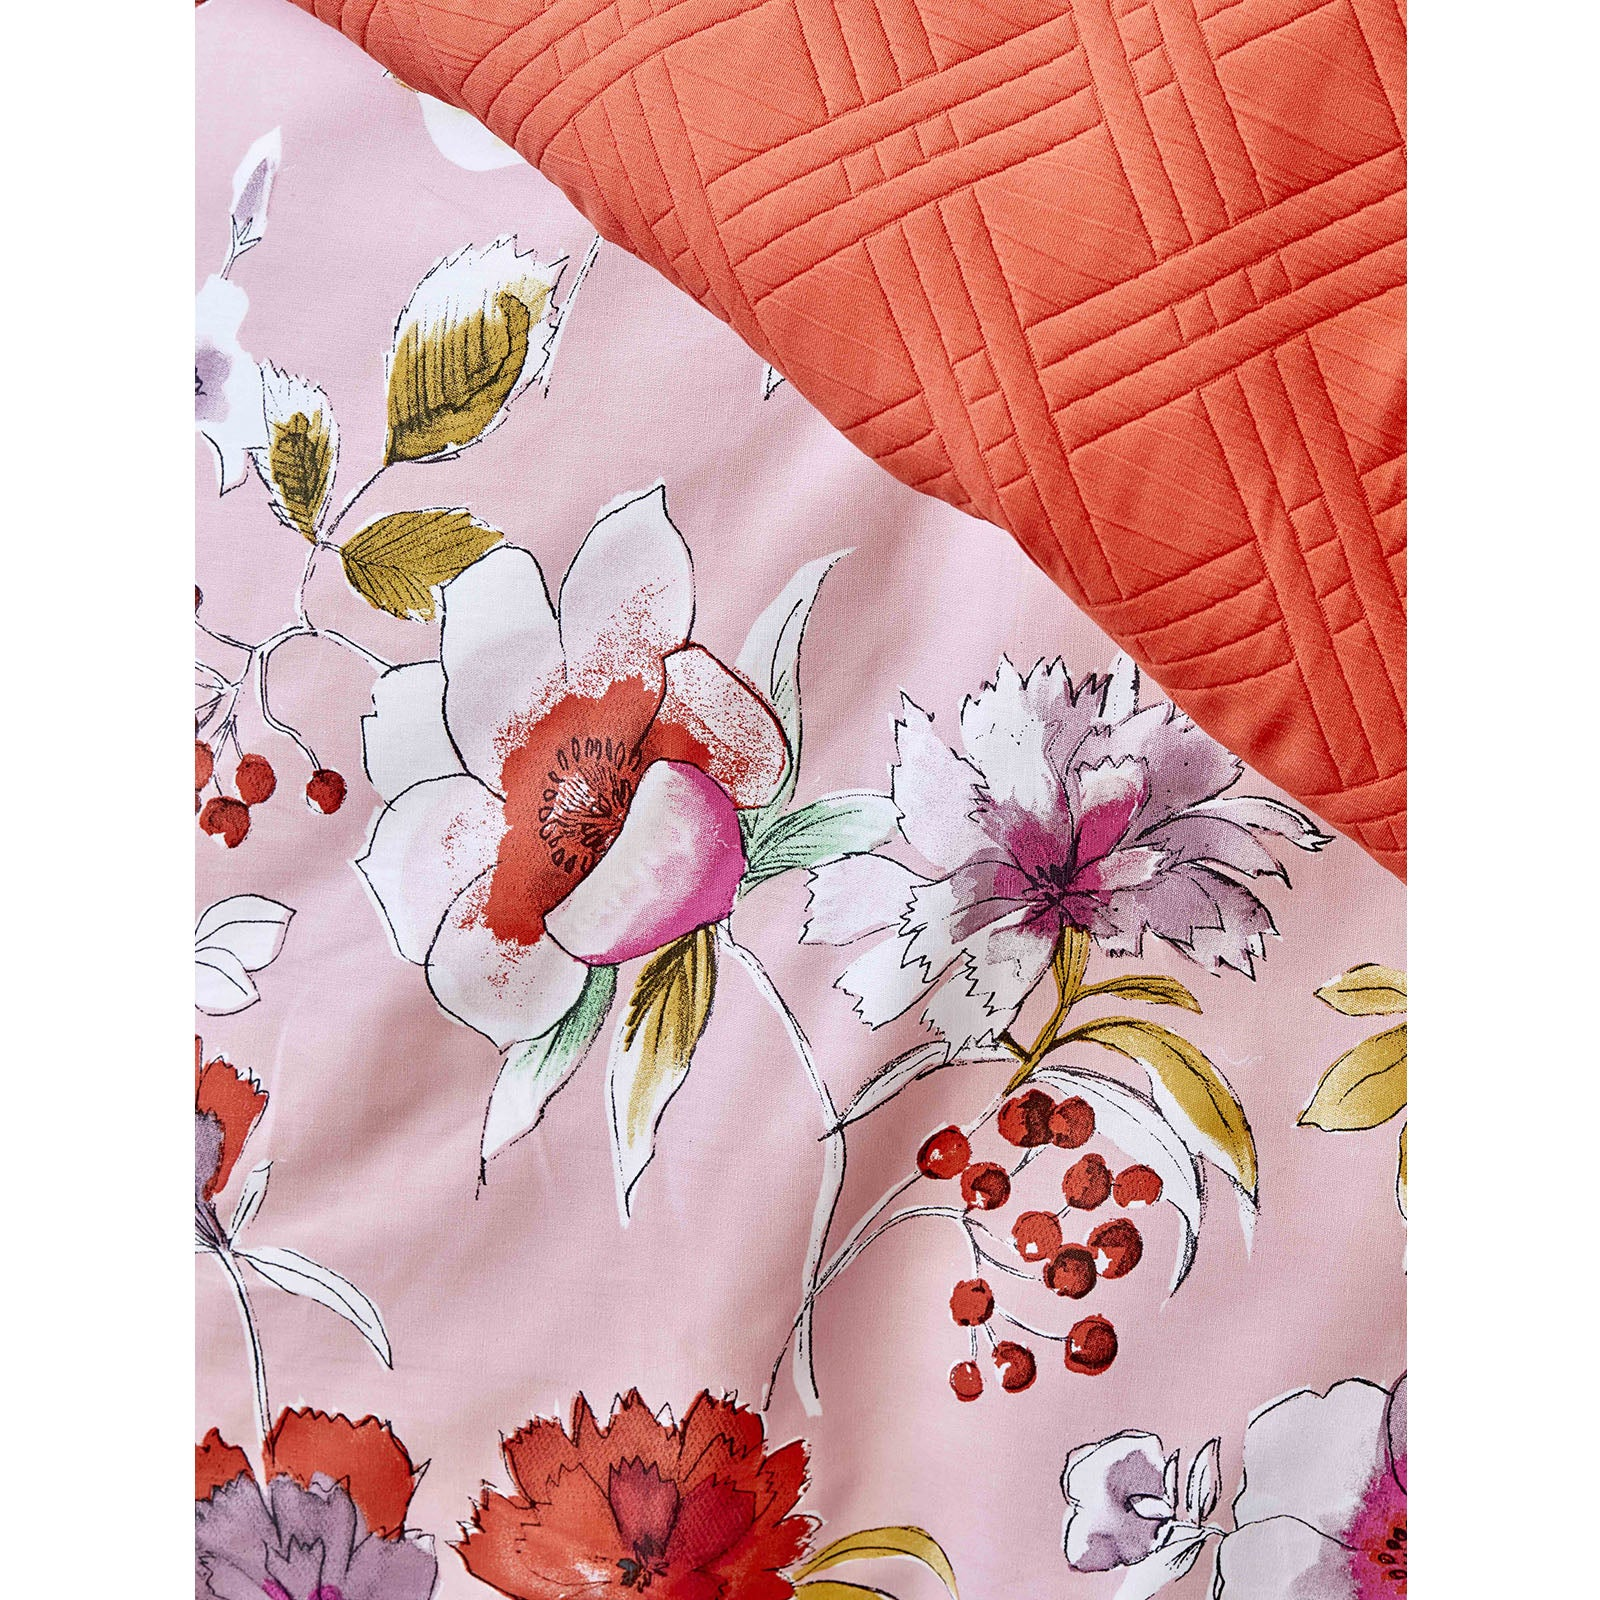 ELIA PEMBE Duvet Cover and Bed Cover Set 200.15.01.0047